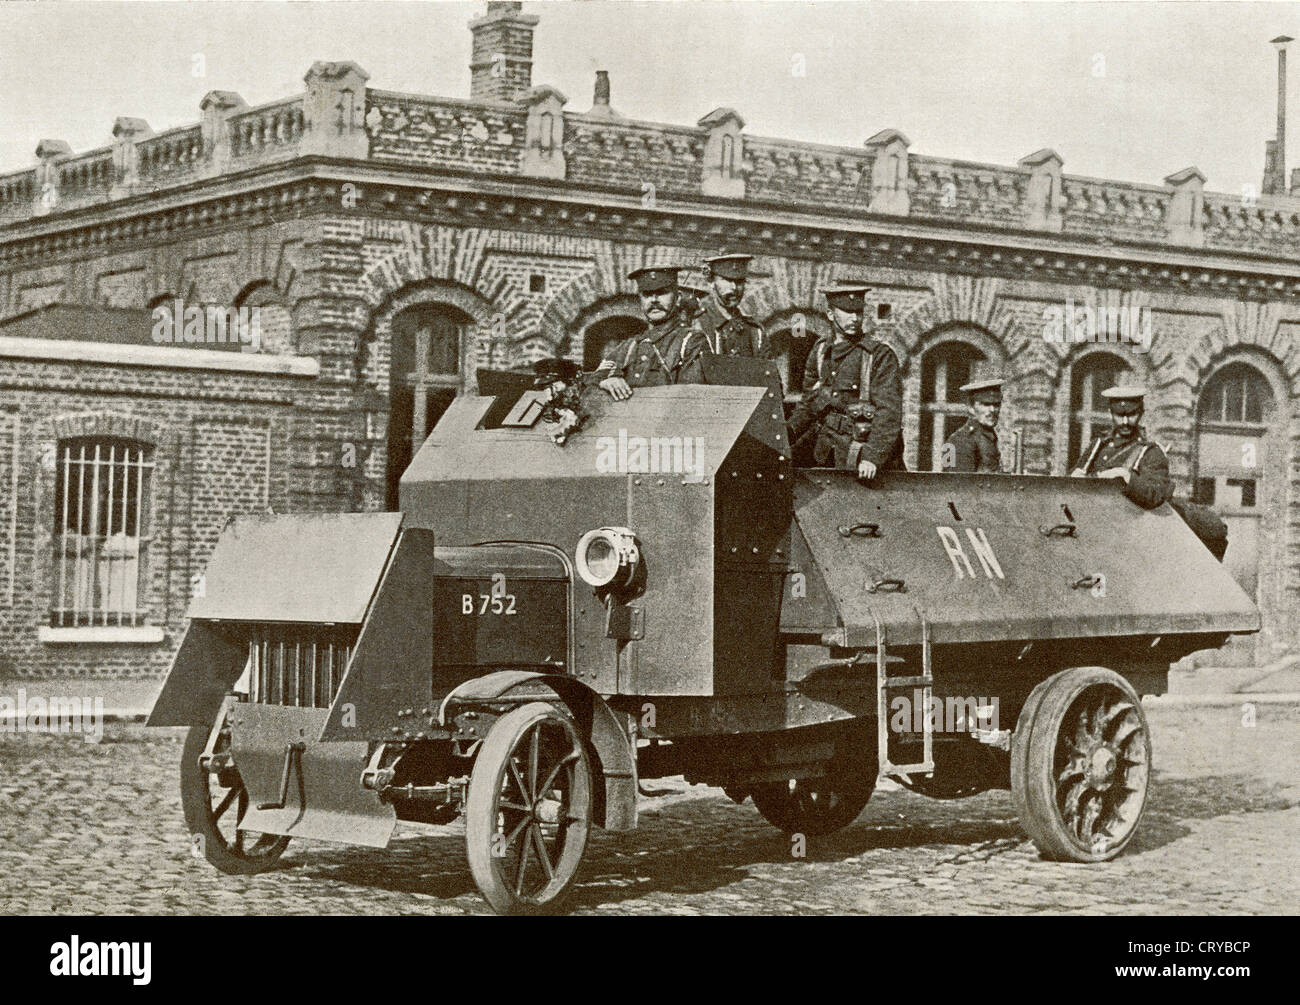 A British Armoured Motor in 1914 during World War I. From The Year 1914 Illustrated. - Stock Image